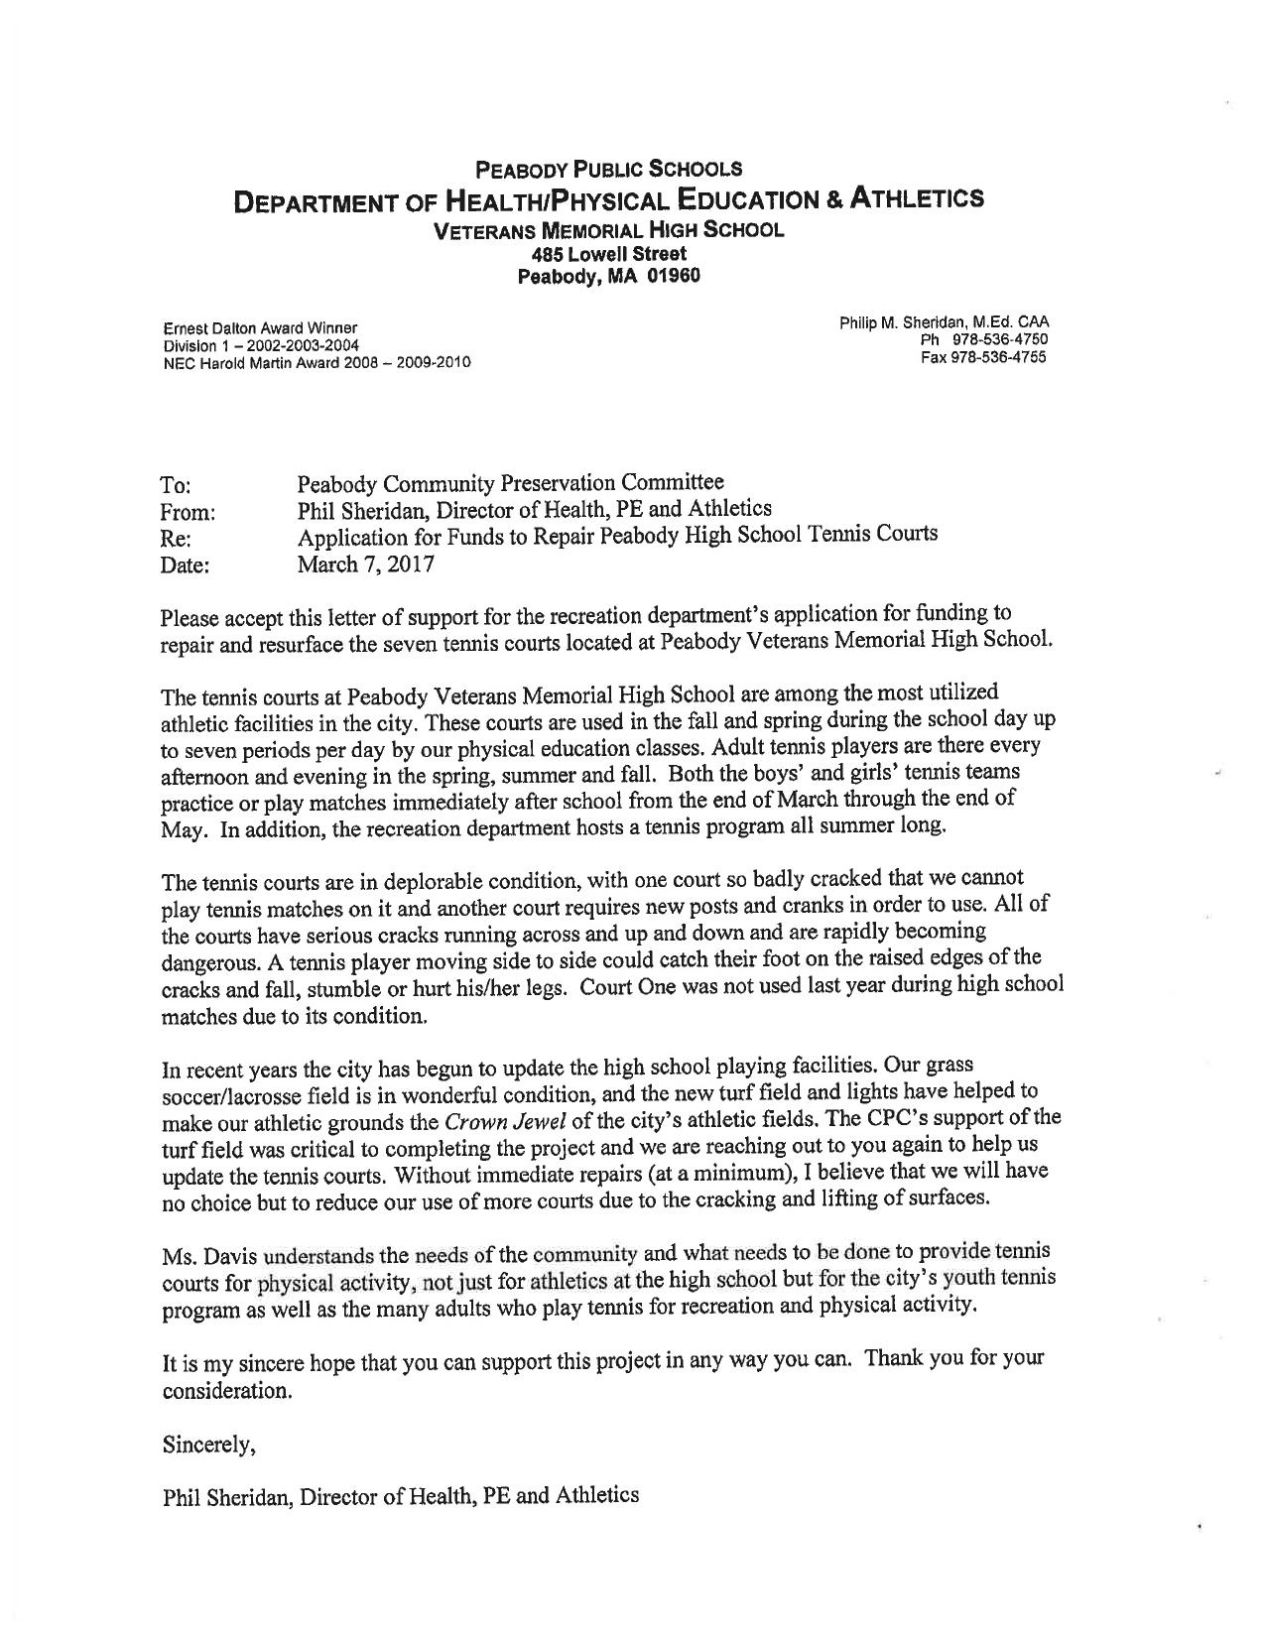 Download PDF Letter from Phil Sheridan